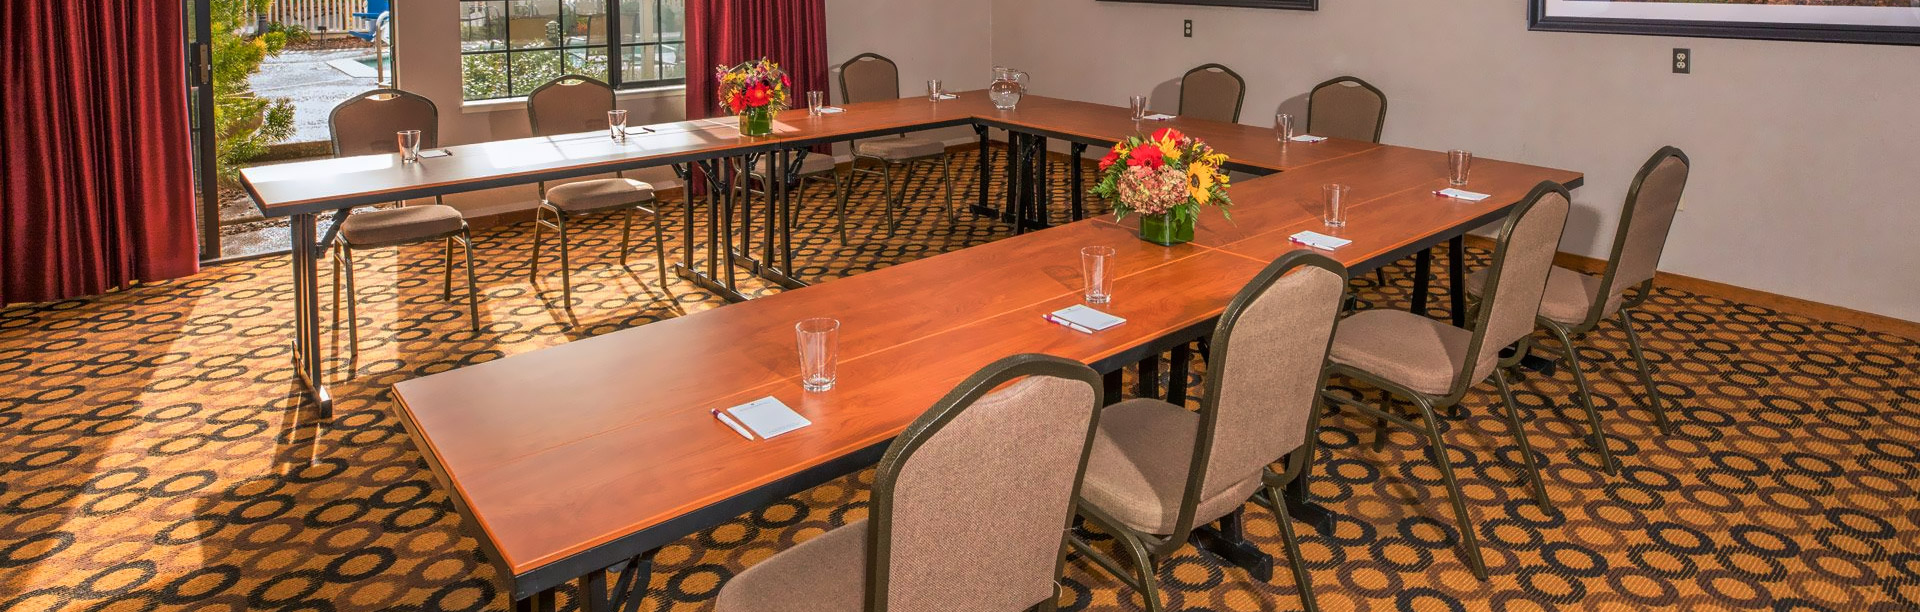 Meetings & Events at Napa Winery Inn Hotel, California